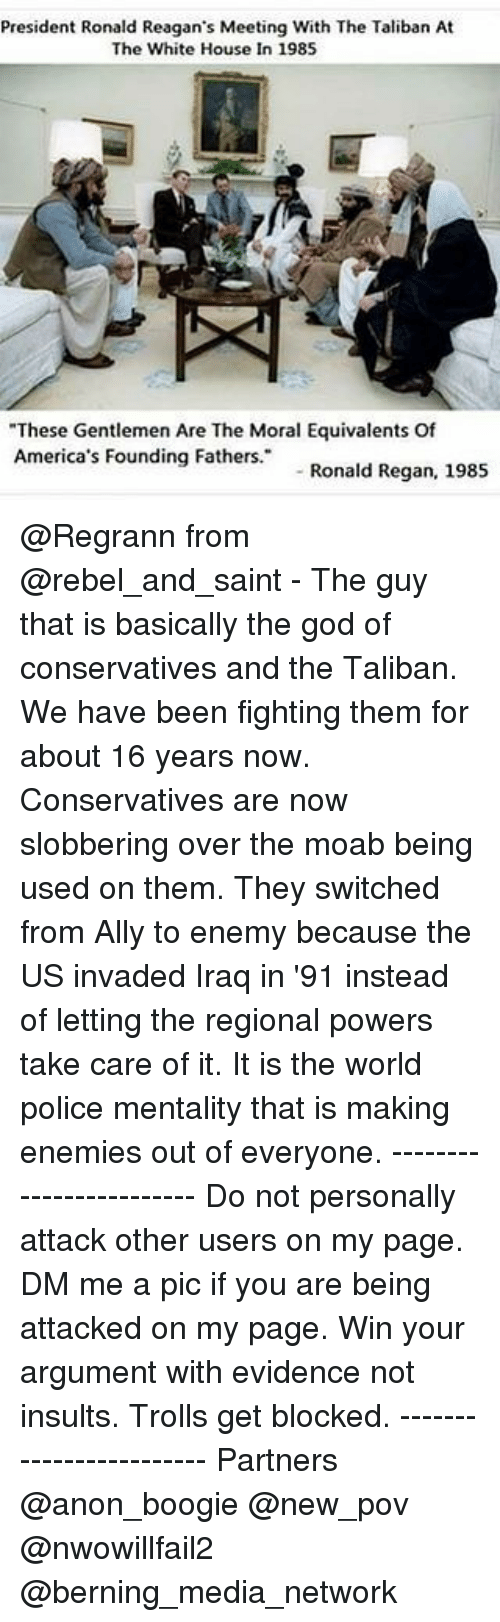 """God, Memes, and Police: President Ronald Reagan's Meeting With The Taliban At  The White House In 1985  """"These Gentlemen Are The Moral Equivalents Of  America's Founding Fathers.  Regan, 1985  Ronald @Regrann from @rebel_and_saint - The guy that is basically the god of conservatives and the Taliban. We have been fighting them for about 16 years now. Conservatives are now slobbering over the moab being used on them. They switched from Ally to enemy because the US invaded Iraq in '91 instead of letting the regional powers take care of it. It is the world police mentality that is making enemies out of everyone. ------------------------ Do not personally attack other users on my page. DM me a pic if you are being attacked on my page. Win your argument with evidence not insults. Trolls get blocked. ------------------------ Partners @anon_boogie @new_pov @nwowillfail2 @berning_media_network"""